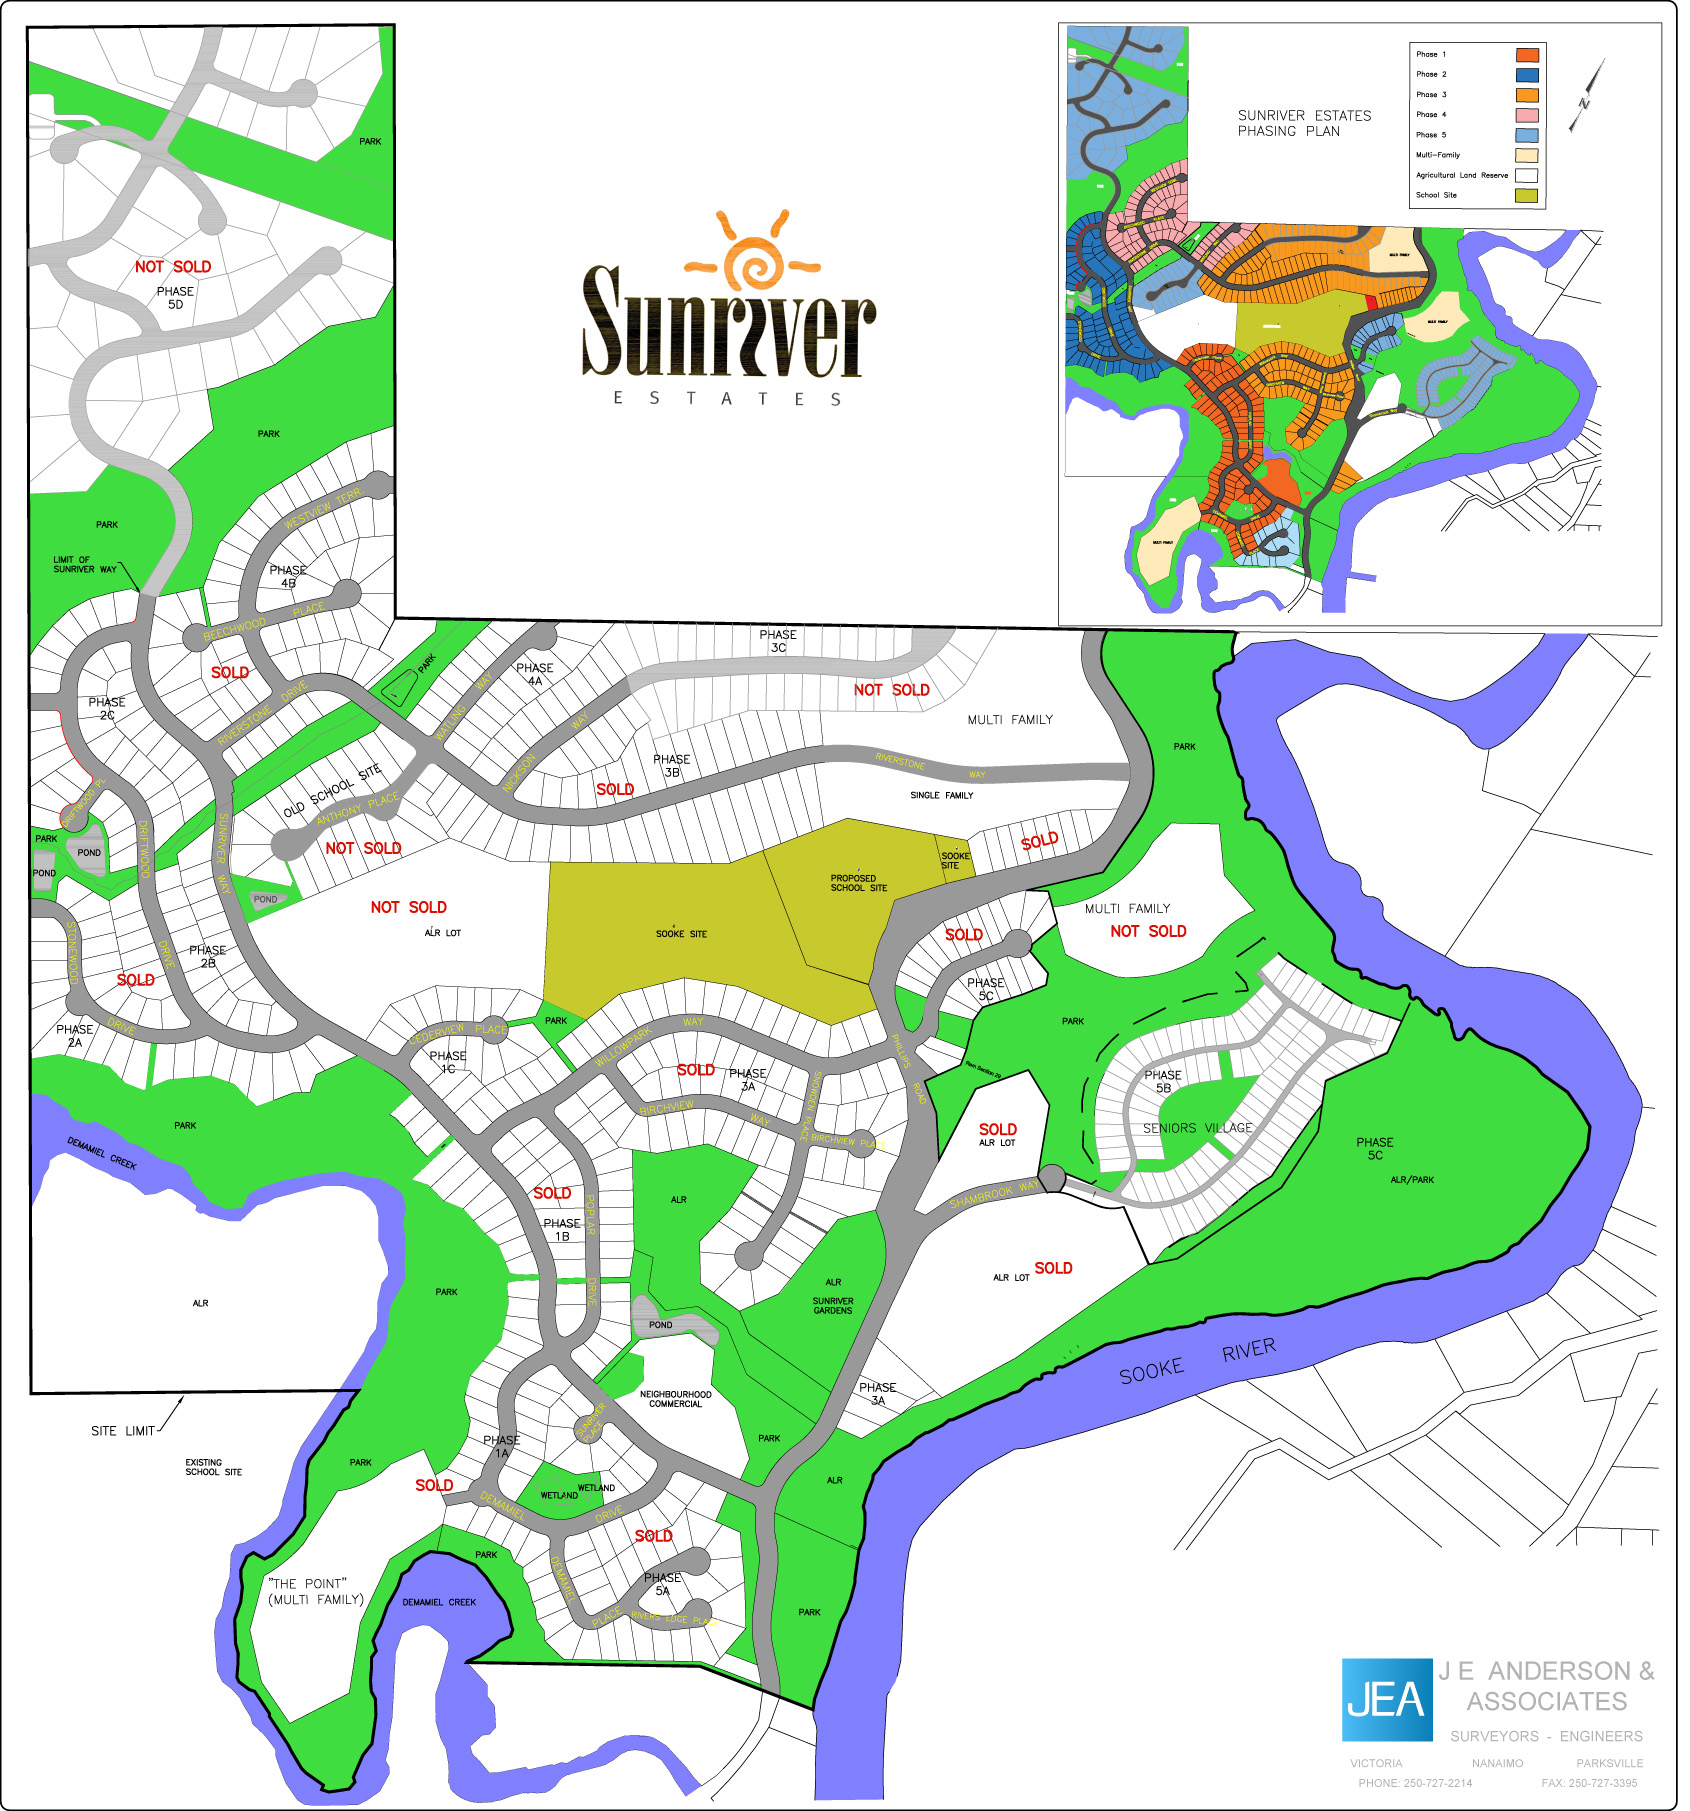 Sunriver-Master-Plan-Sept29-2015-(1).jpg